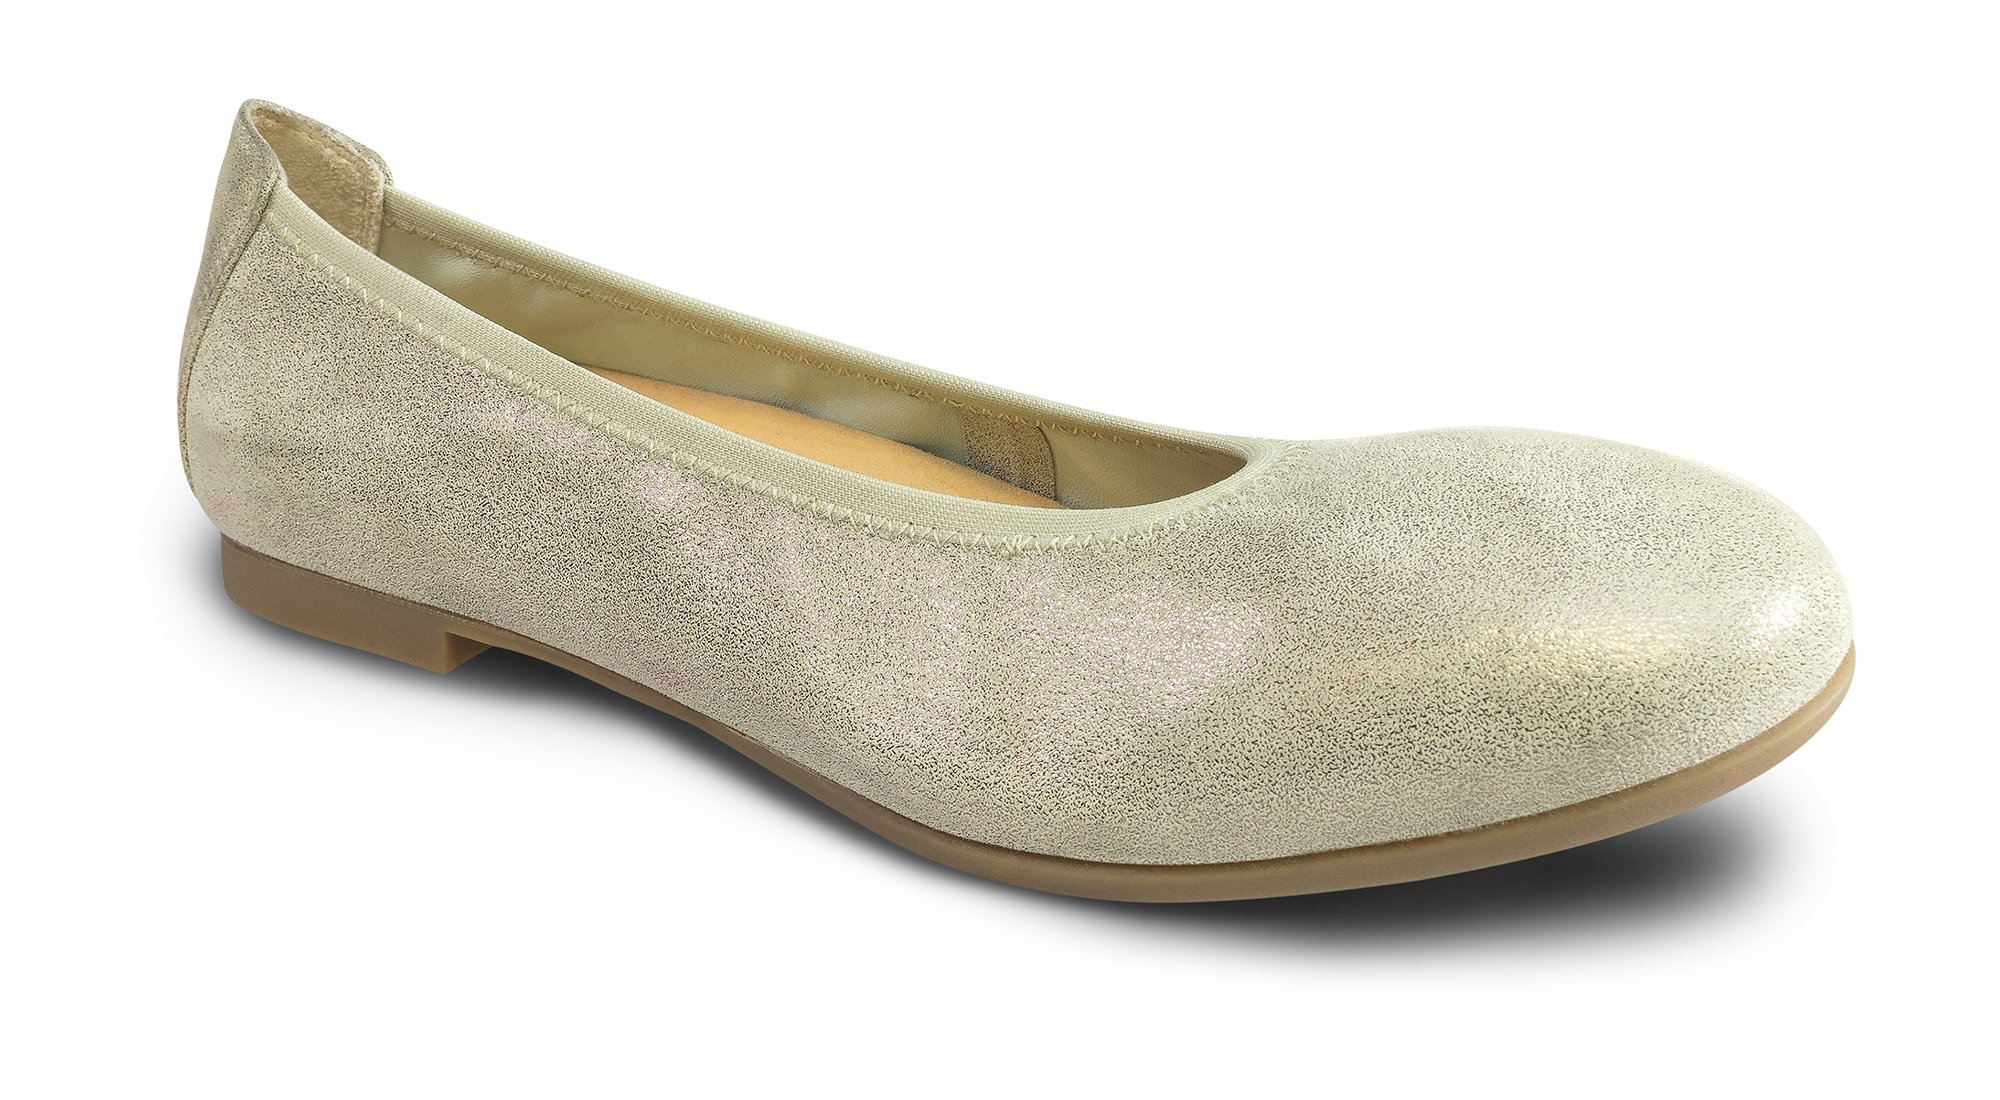 Revere Paris Women's Comfort Shoe With Removable Foot Bed: Gold 7 Medium (B) Slip On